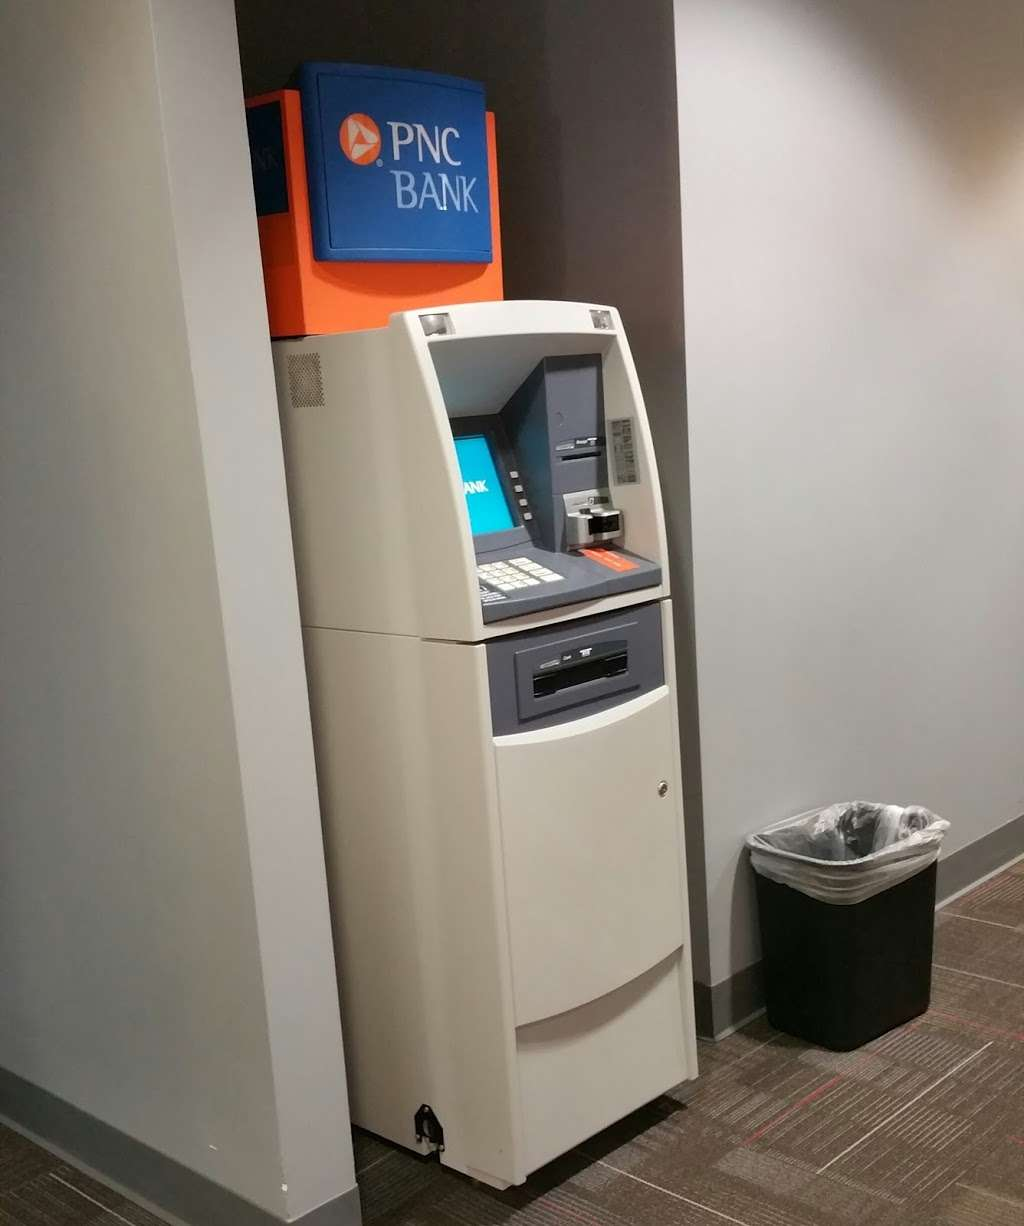 pnc bank atm charges